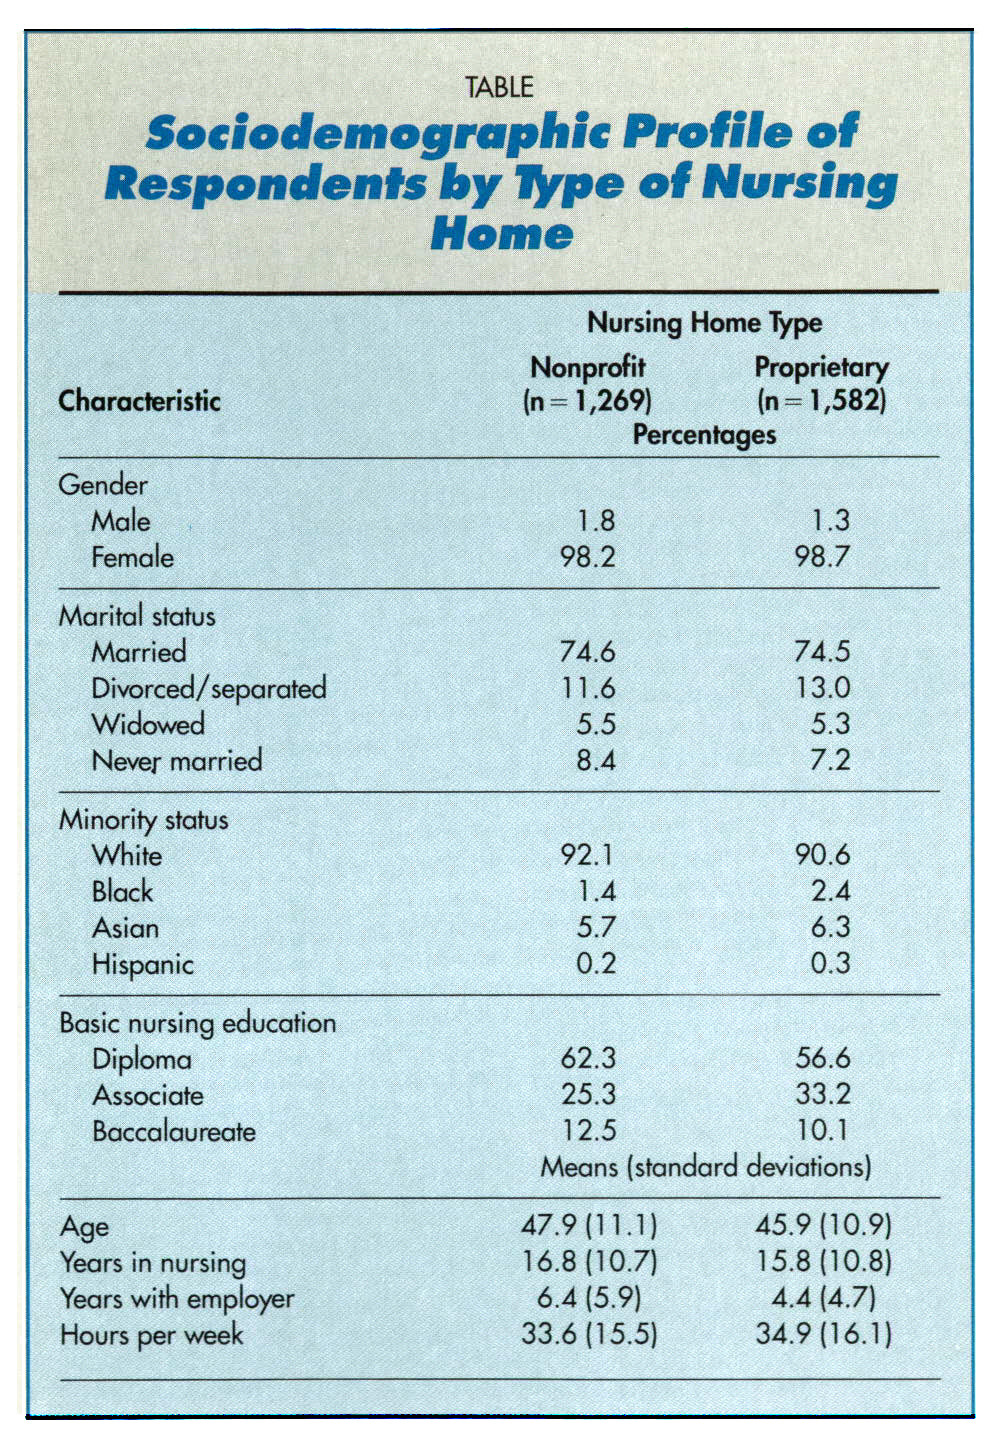 TABLESociodemographic Profile of Respondents by ff pe of Nursing Home